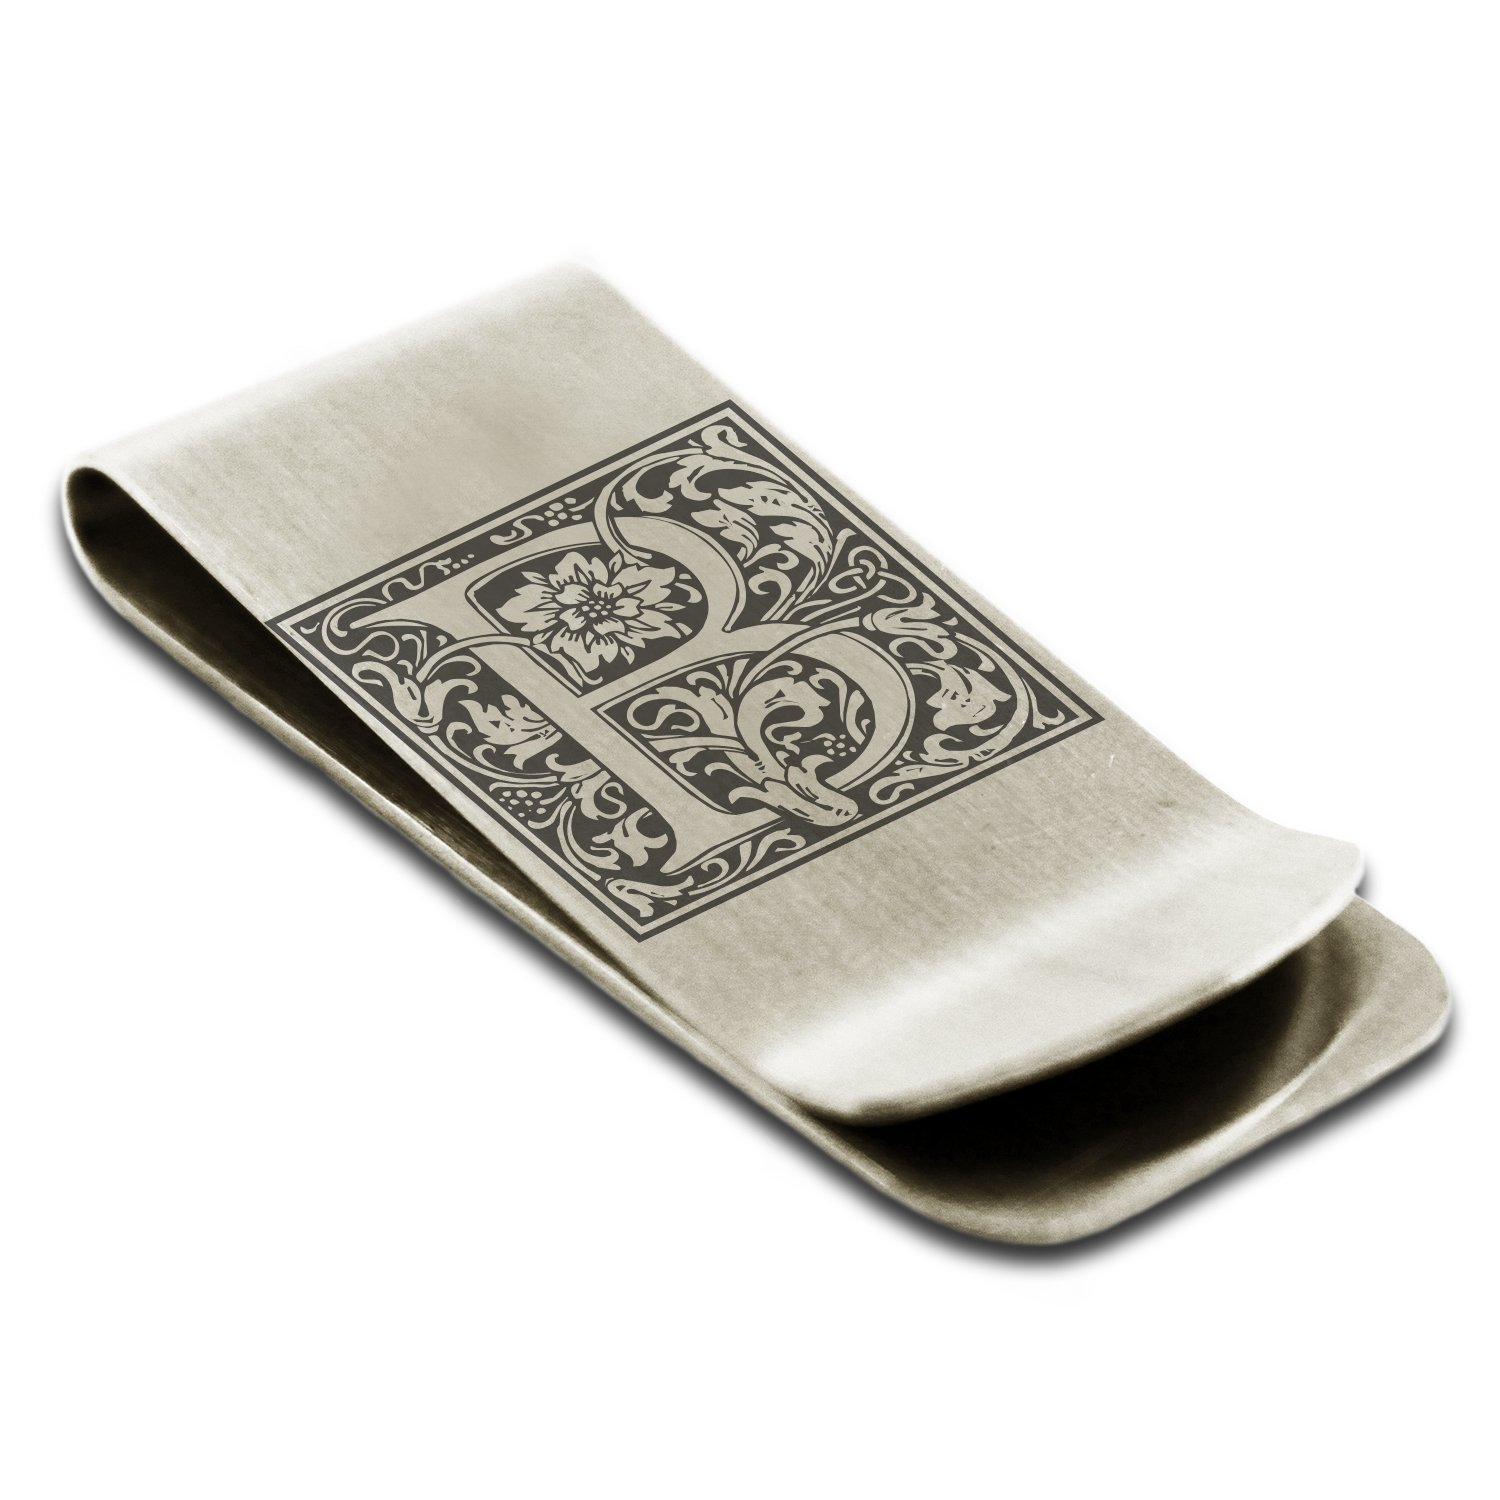 Stainless Steel Letter B Initial Floral Box Monogram Engraved Money Clip Credit Card Holder